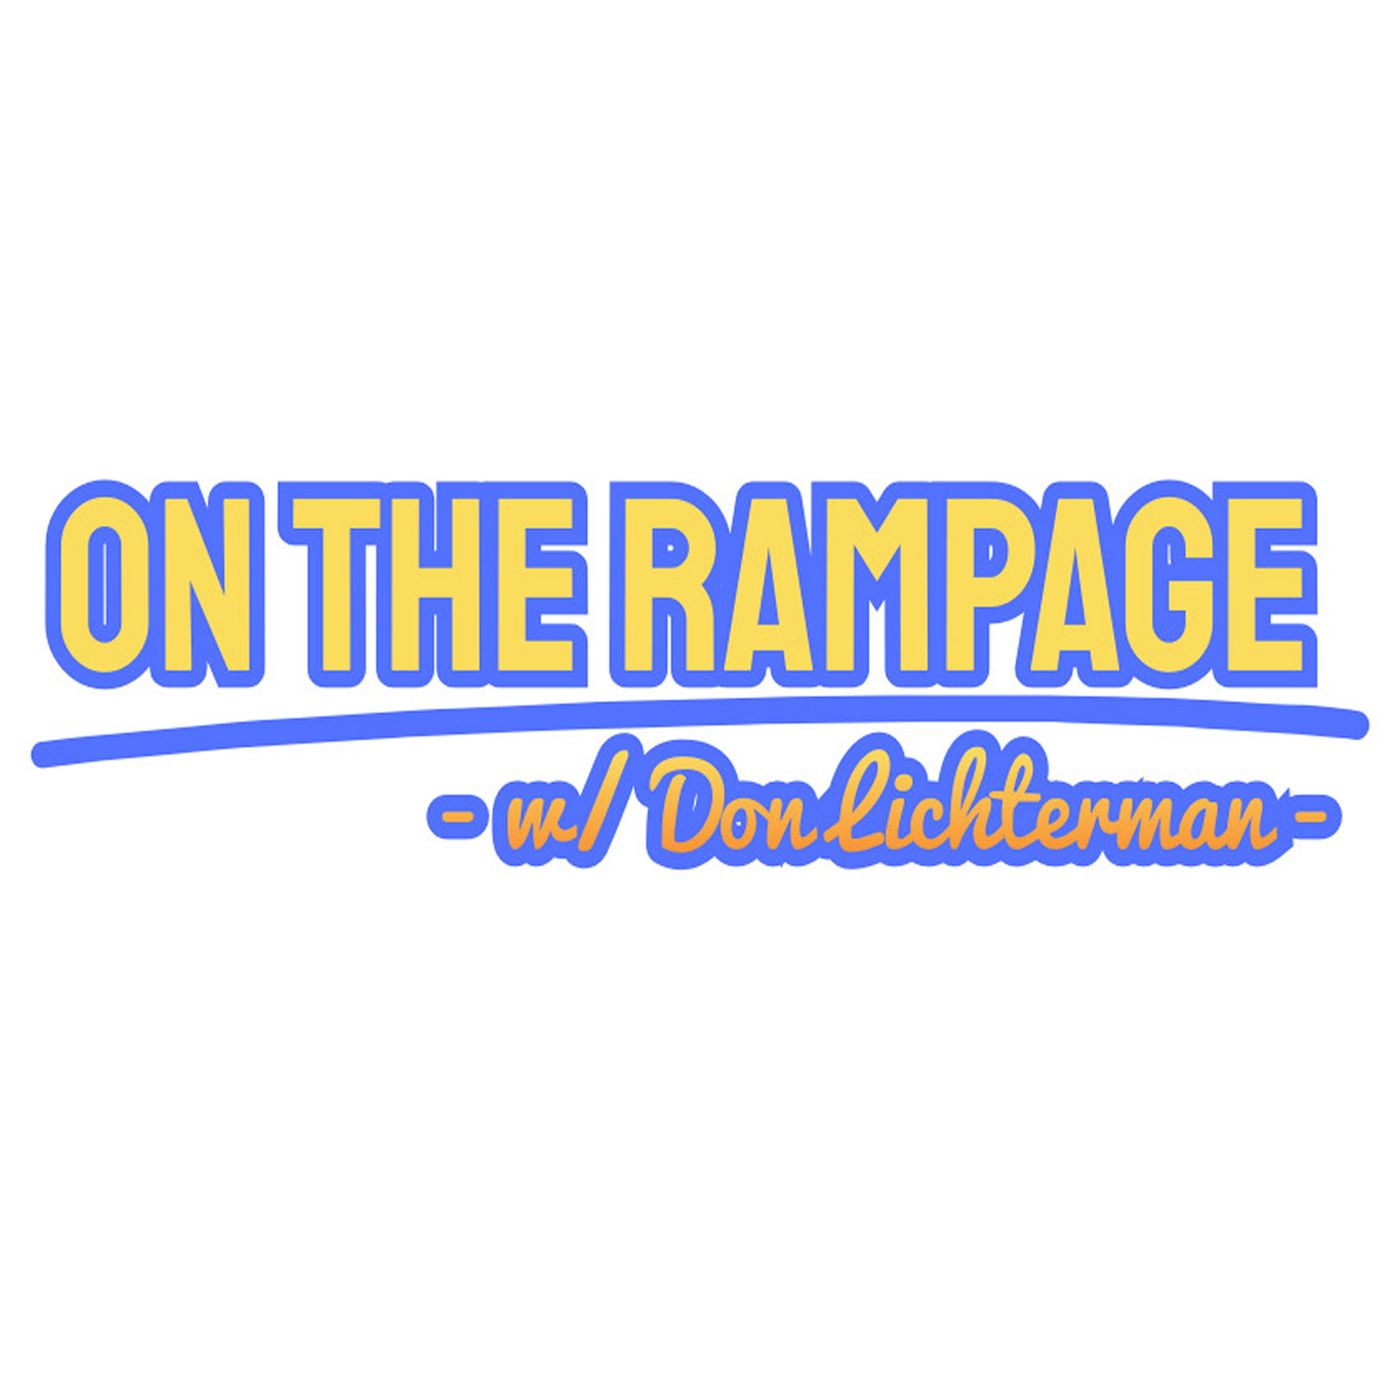 On The Rampage w/ Don Lichterman, Human Penis, COVID Task Force, Soup Can, Popular Vote in 16, Aisha